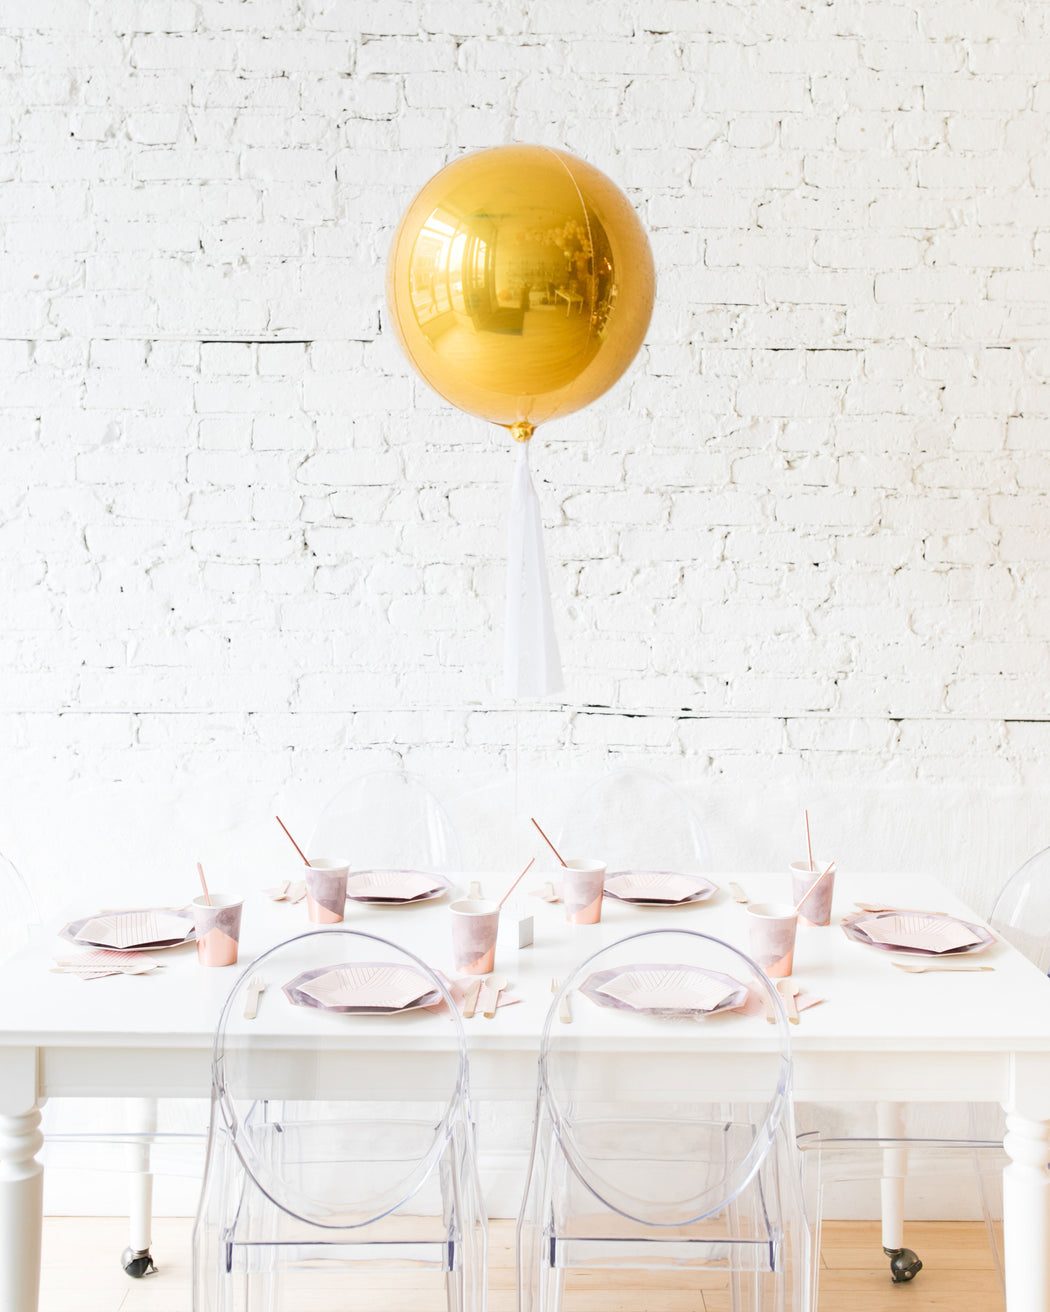 16in Gold Orb Foil Balloon and White Skirt Centerpiece